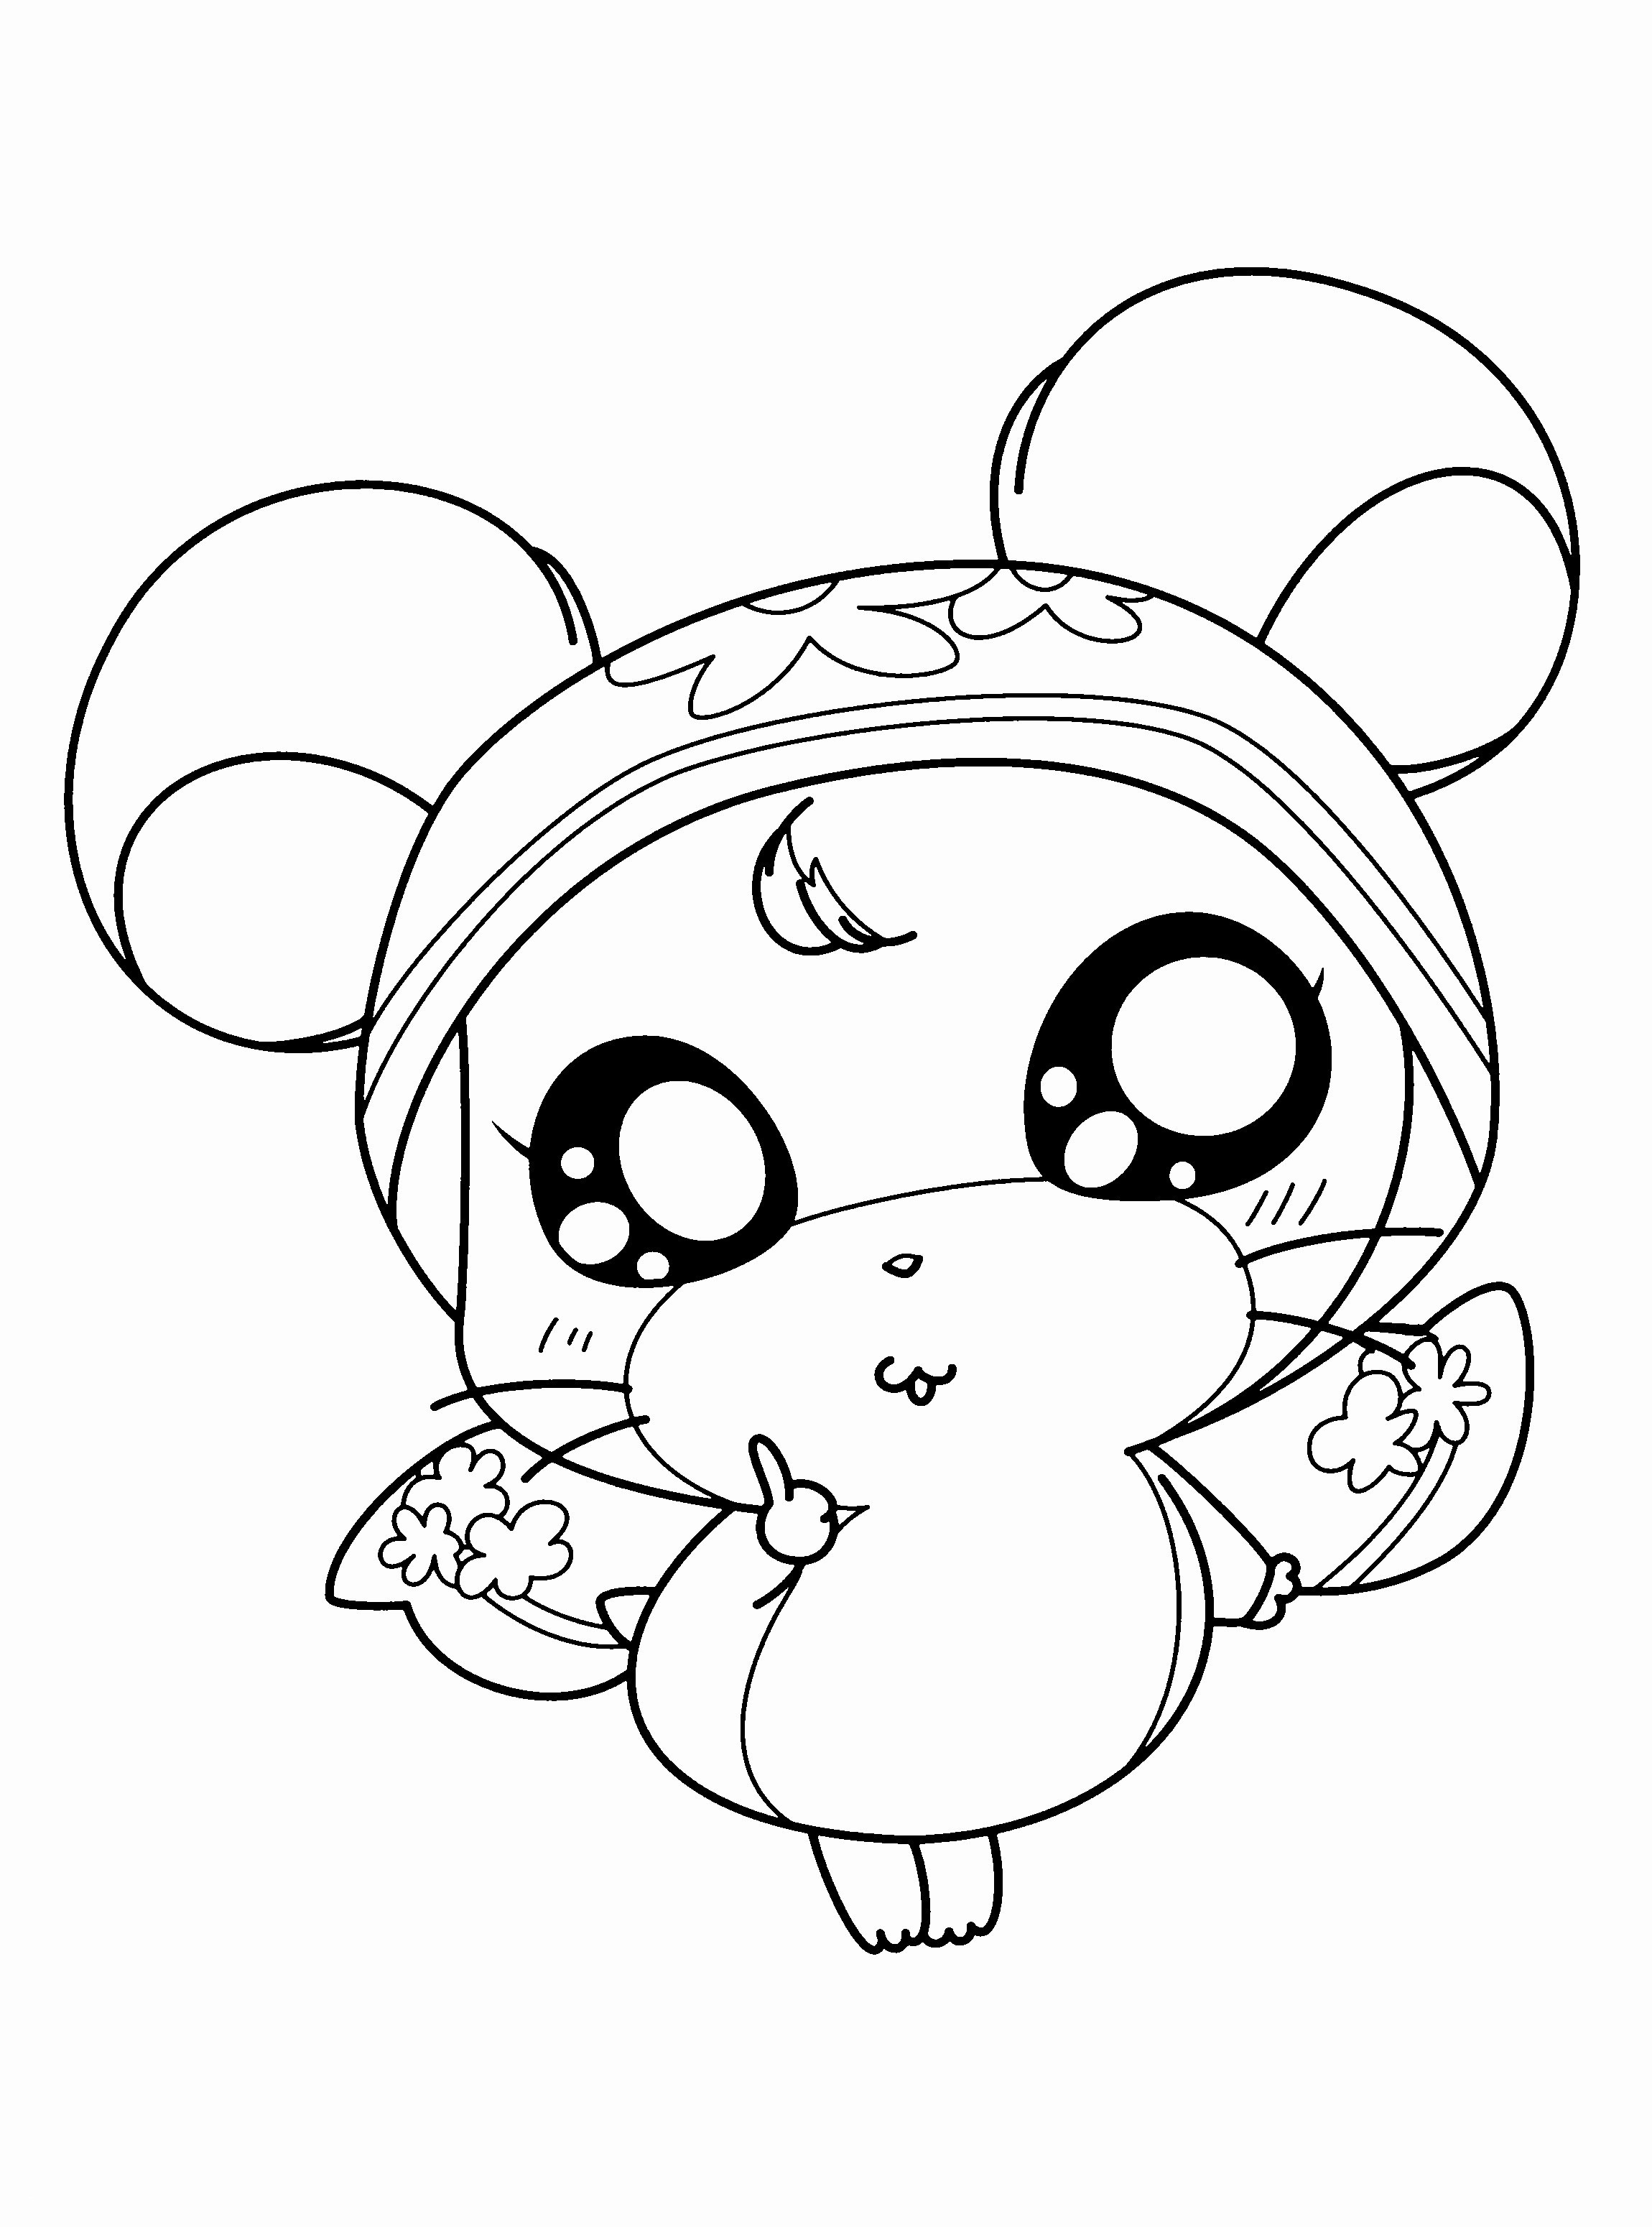 Baby Coloring Pages  Gallery 9l - Save it to your computer